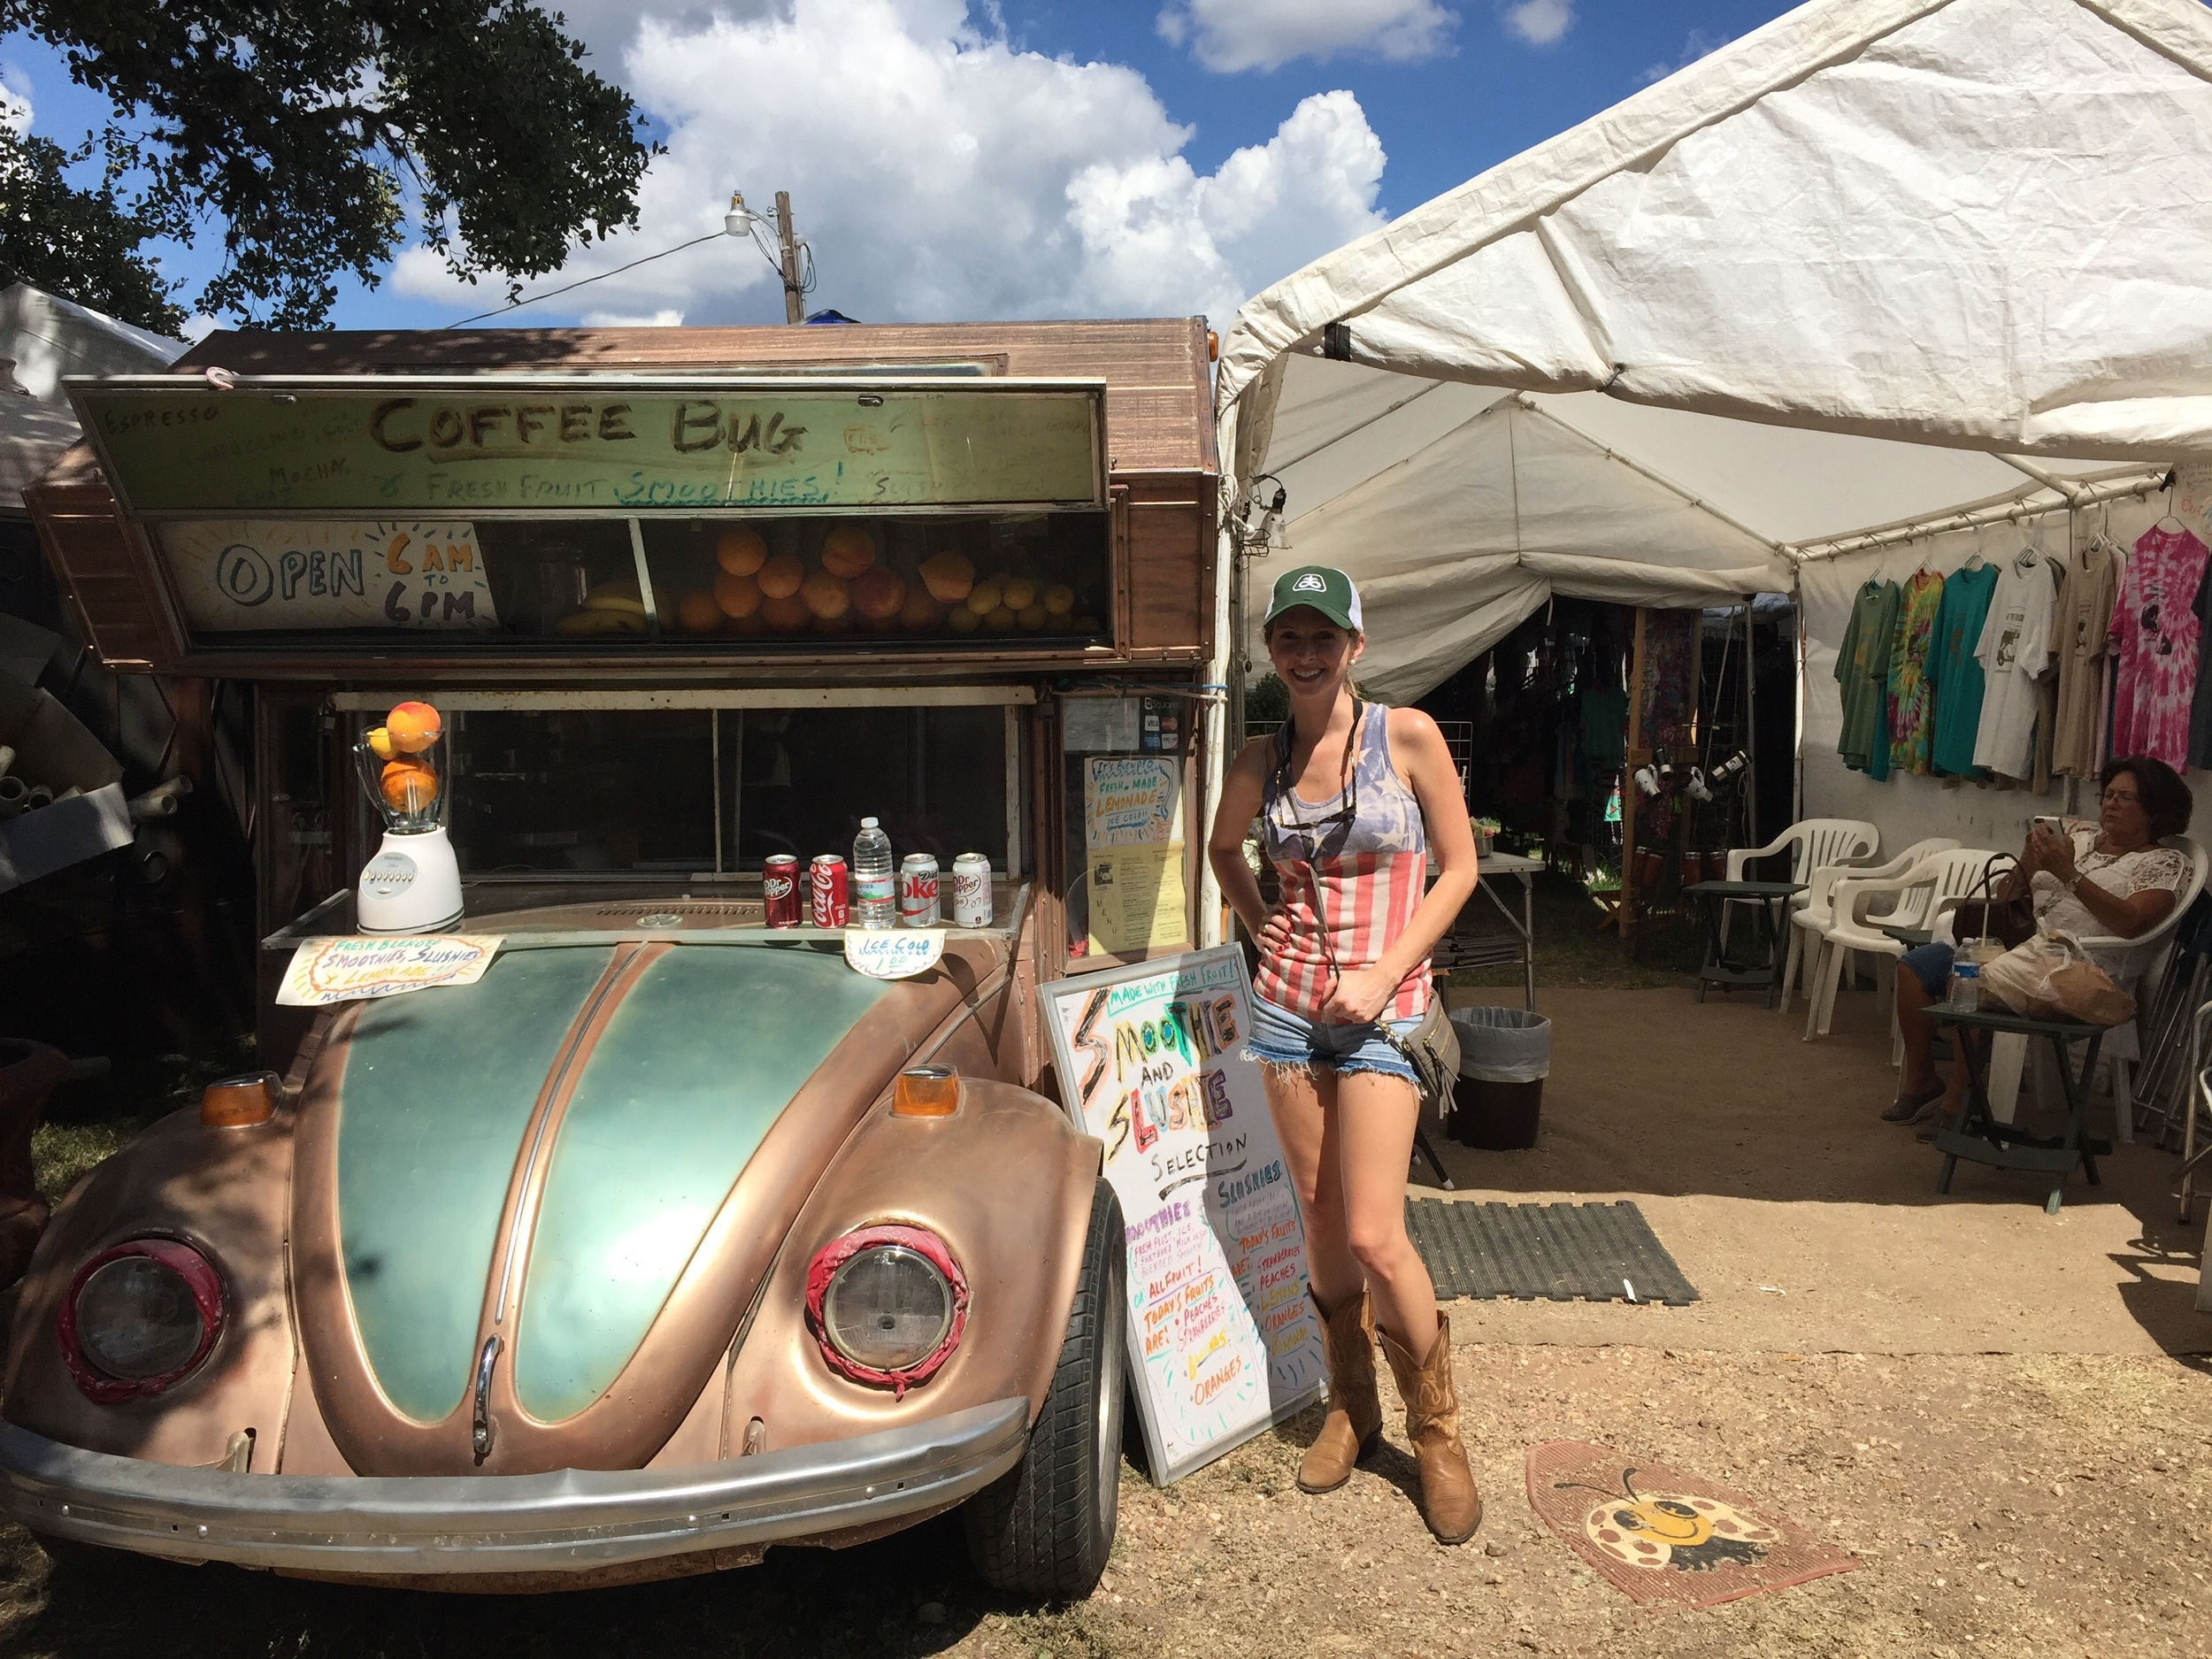 """The """"Coffee Bug"""" is a local hot spot for grabbing a morning beverage, but I came prepared with my own juice! I was on a 3 day mission, and I didn't have time to kill."""